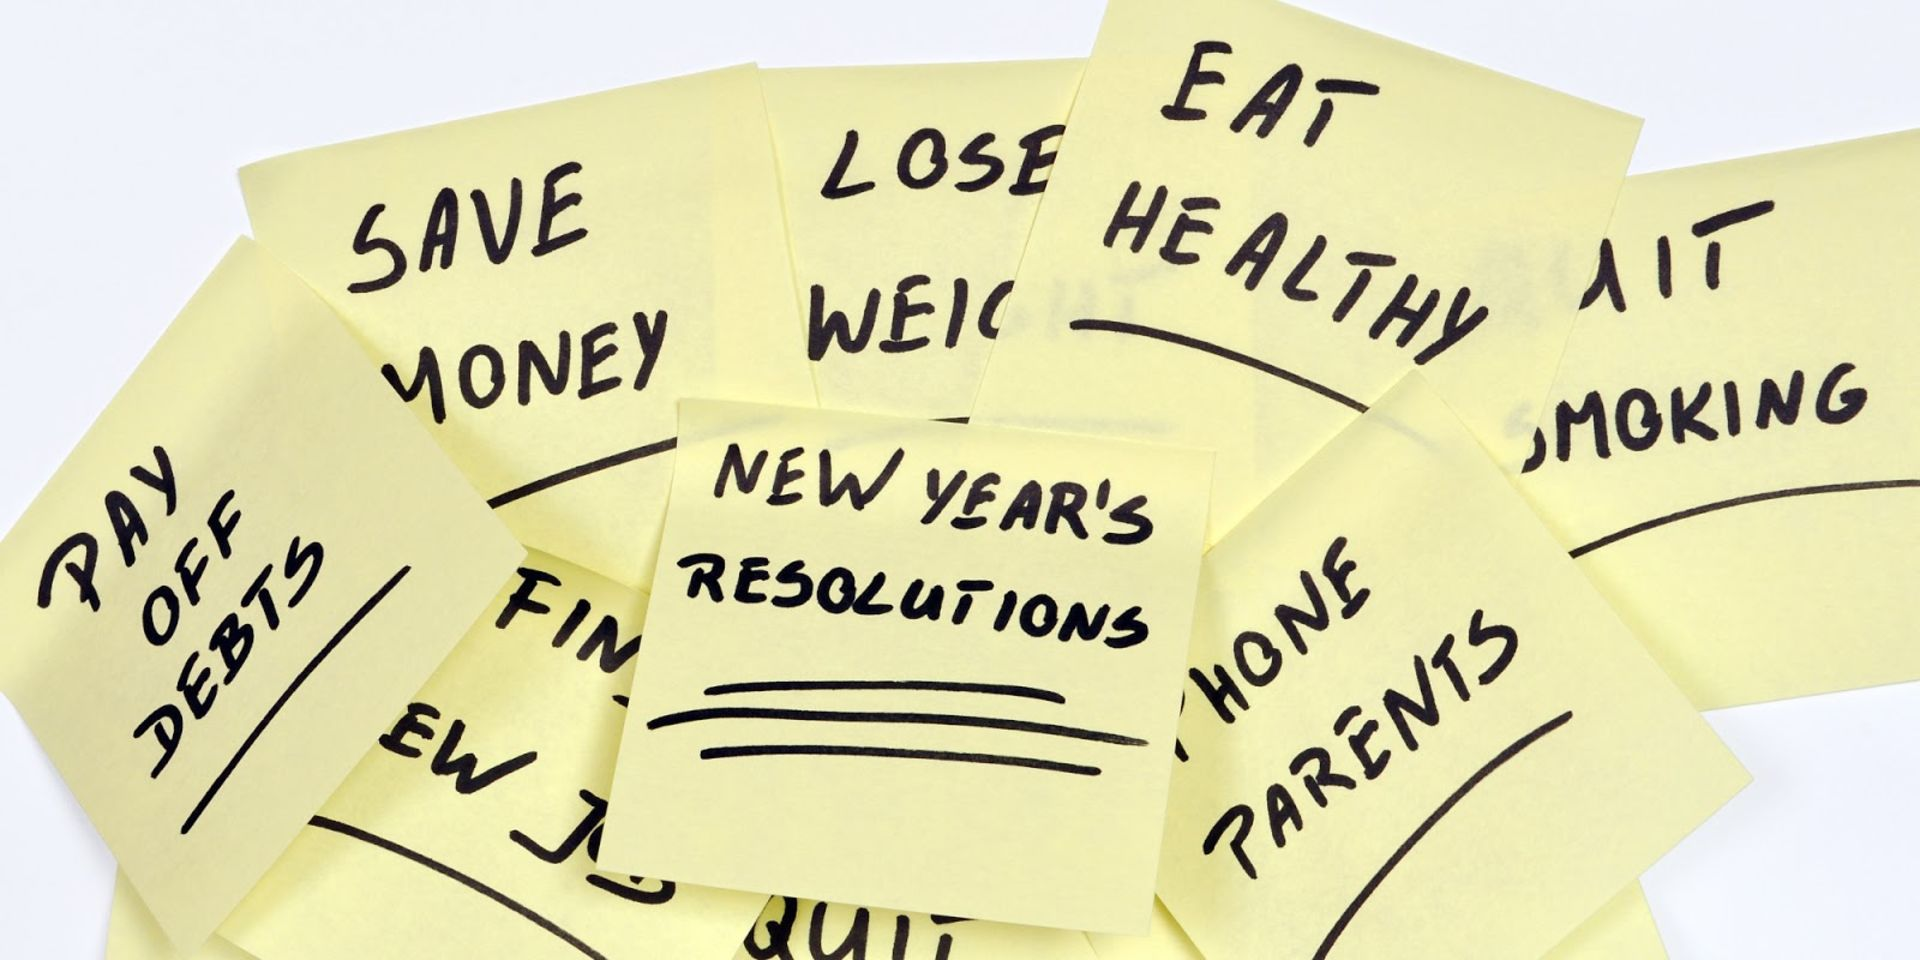 New Years' Resolutions